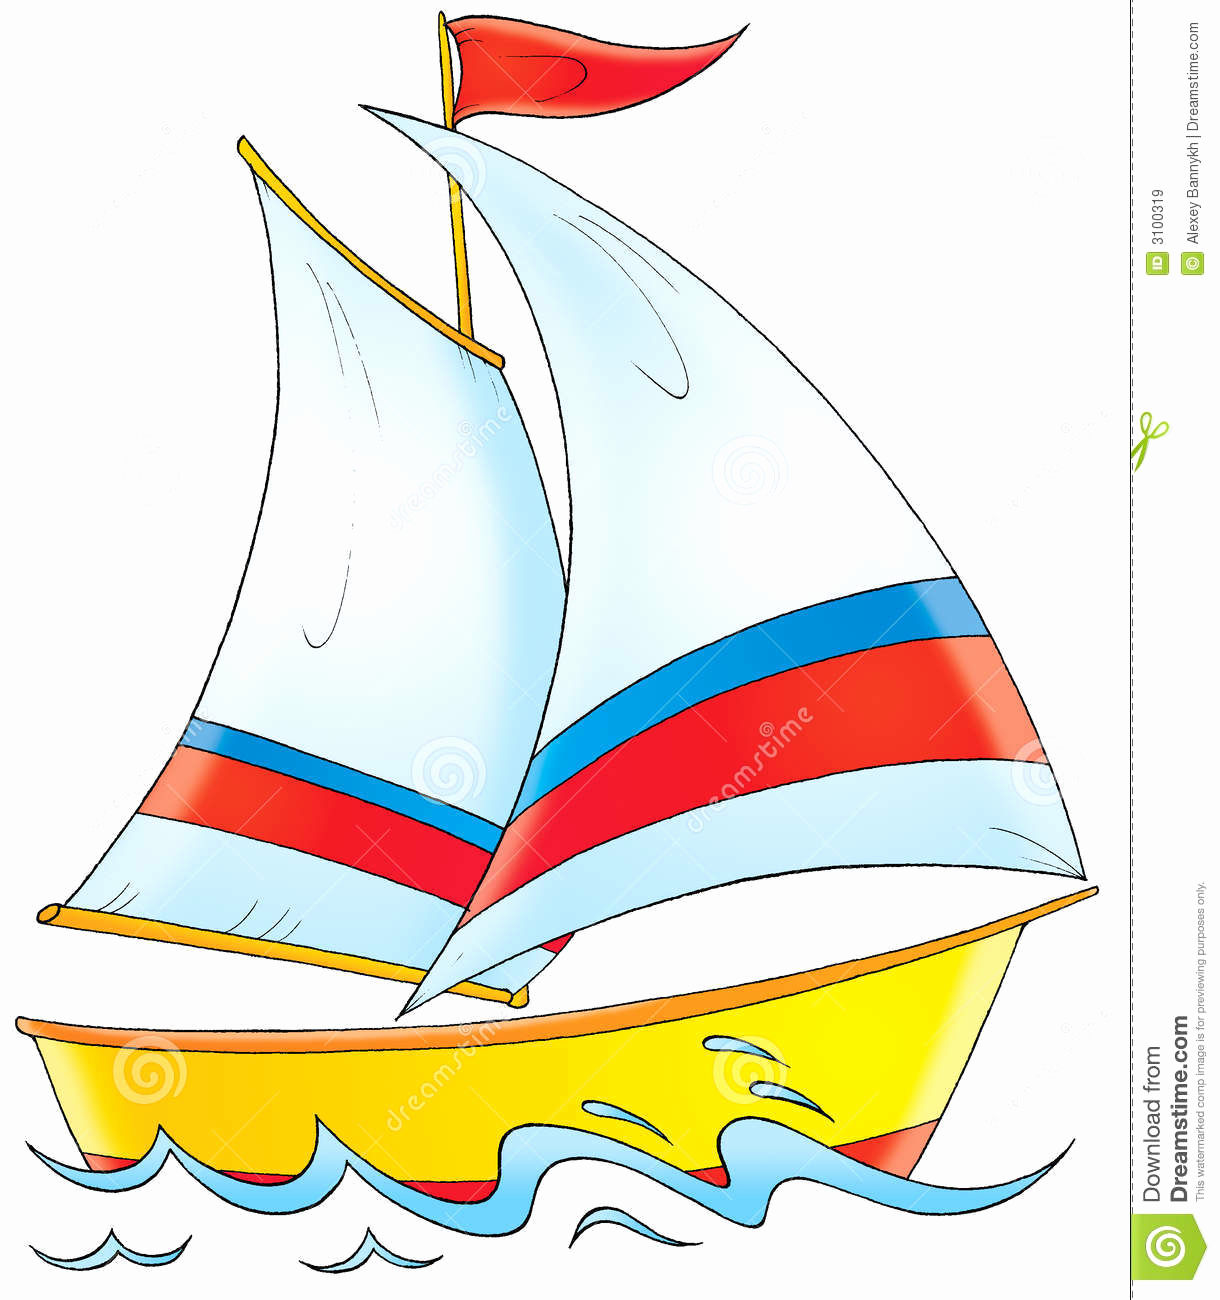 Sail clipart yatch. Cute yacht children illustration